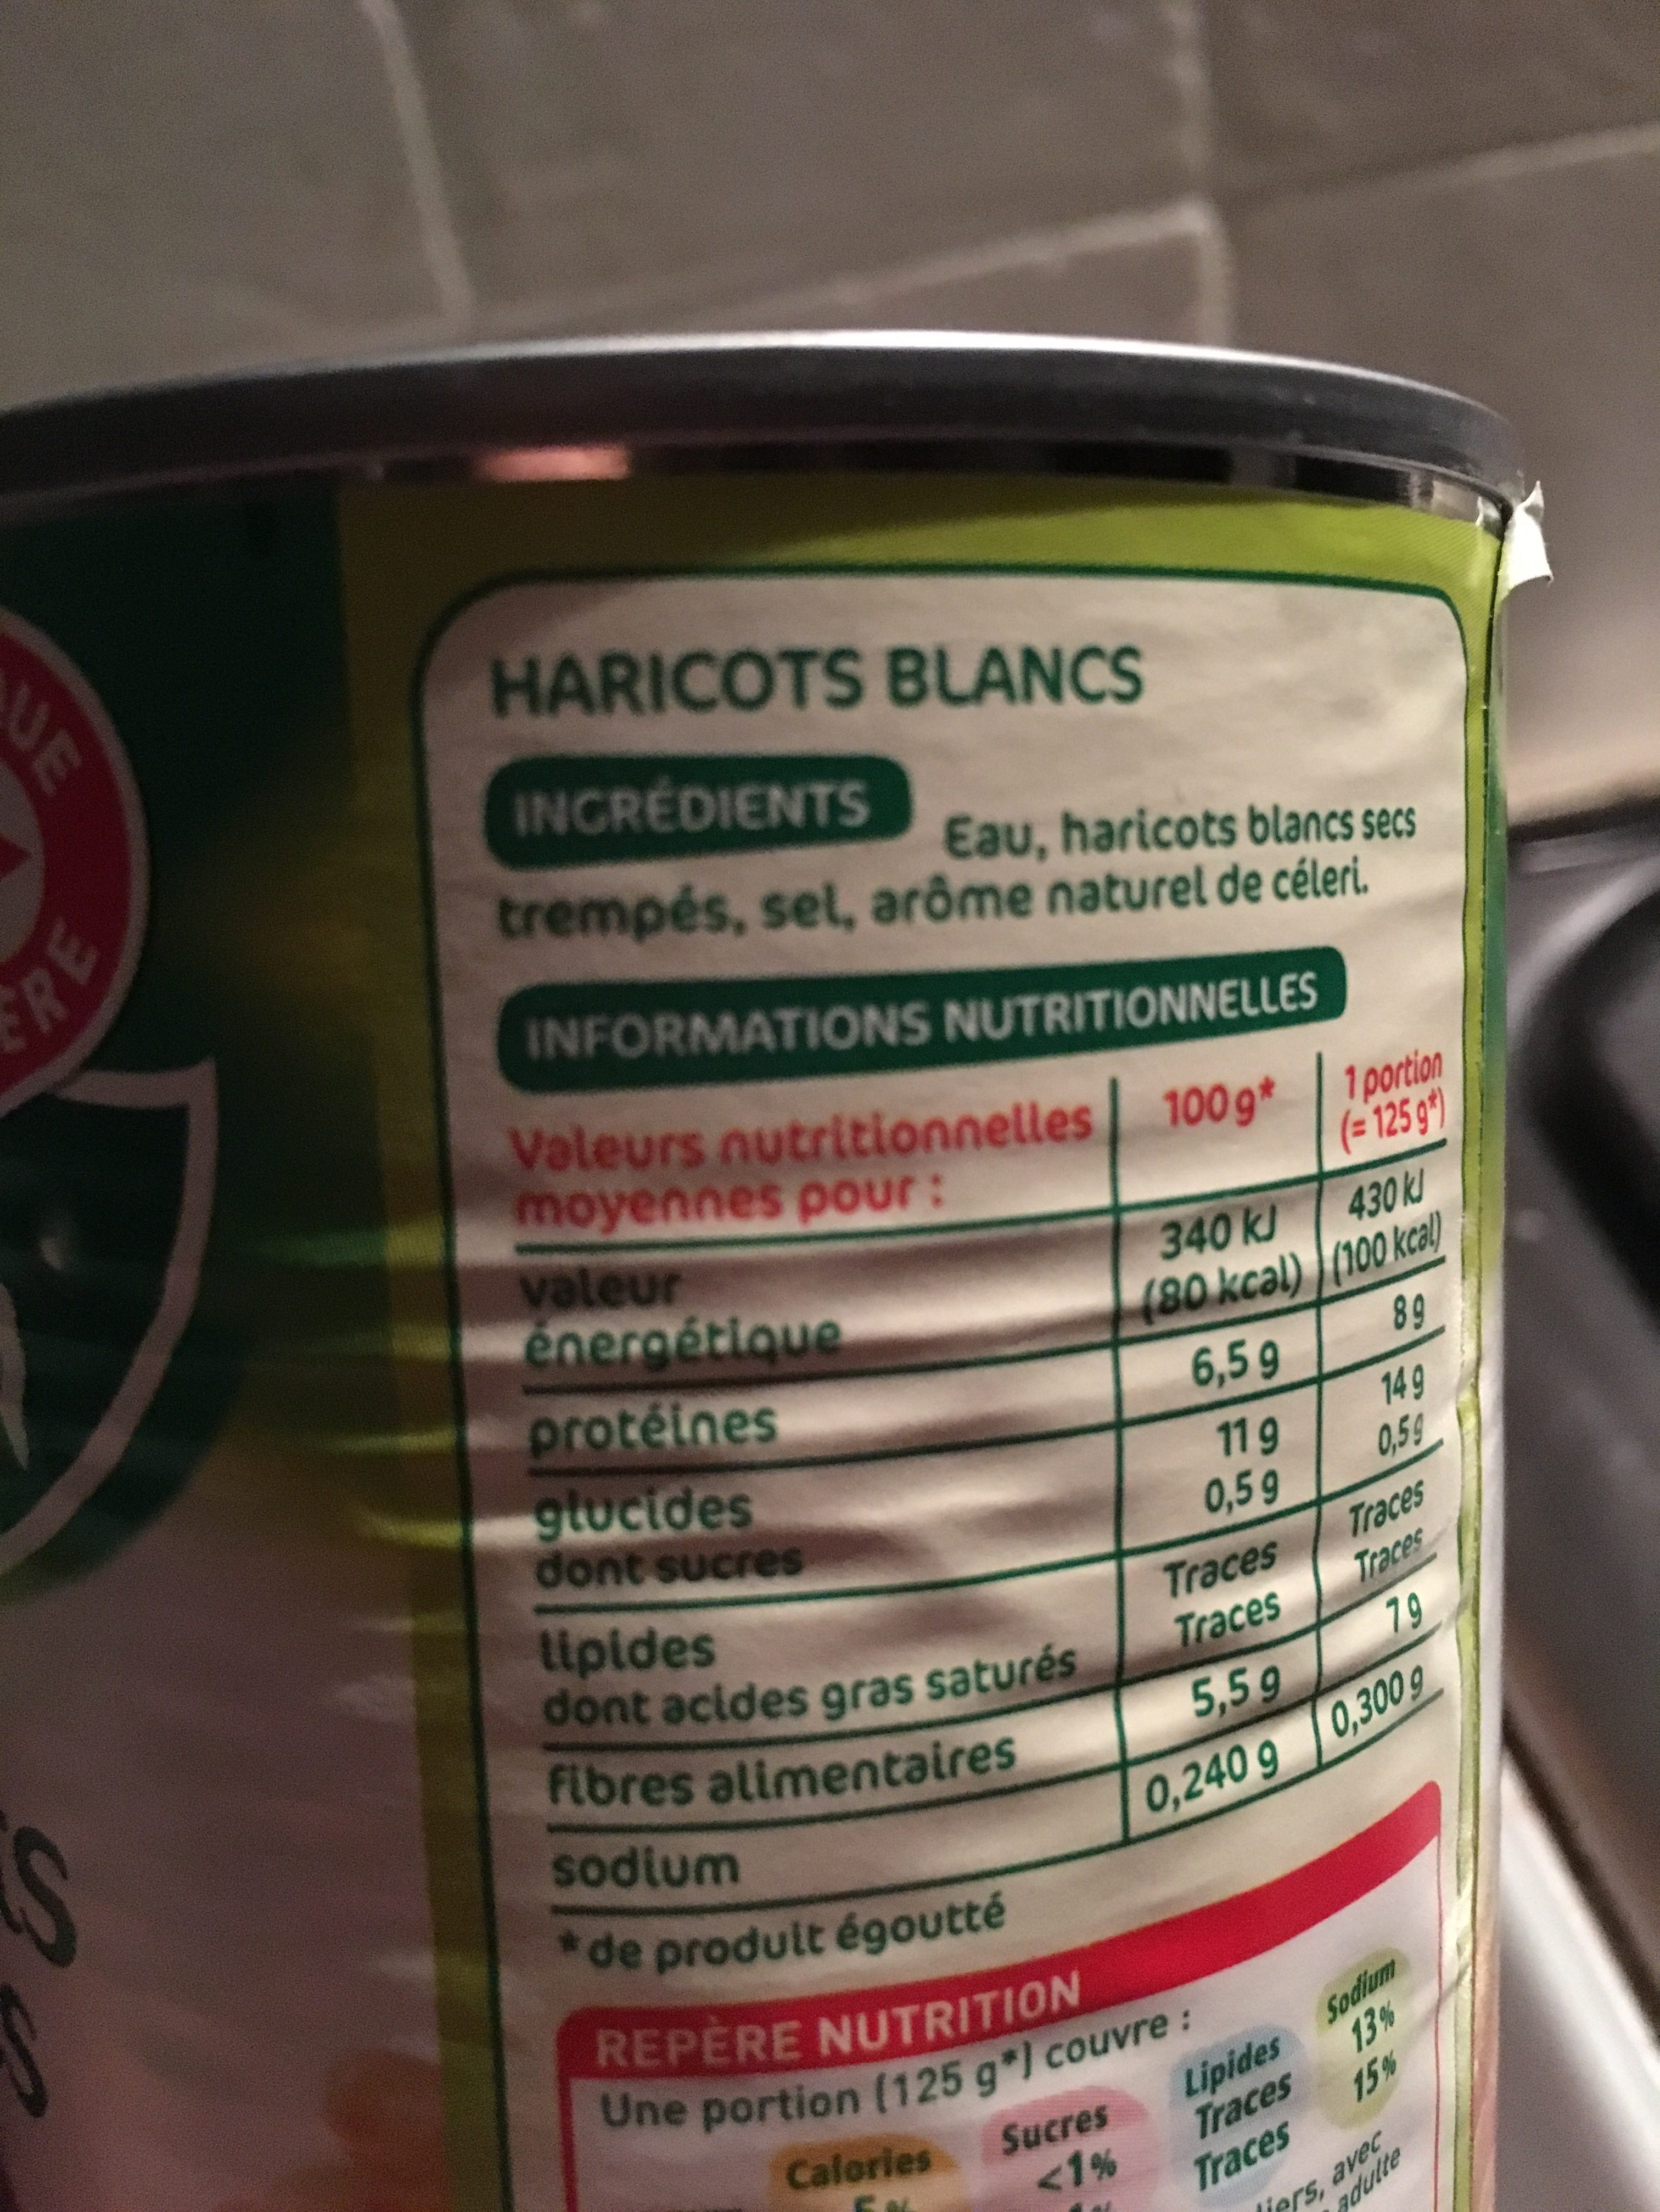 Haricots blancs - Ingredients